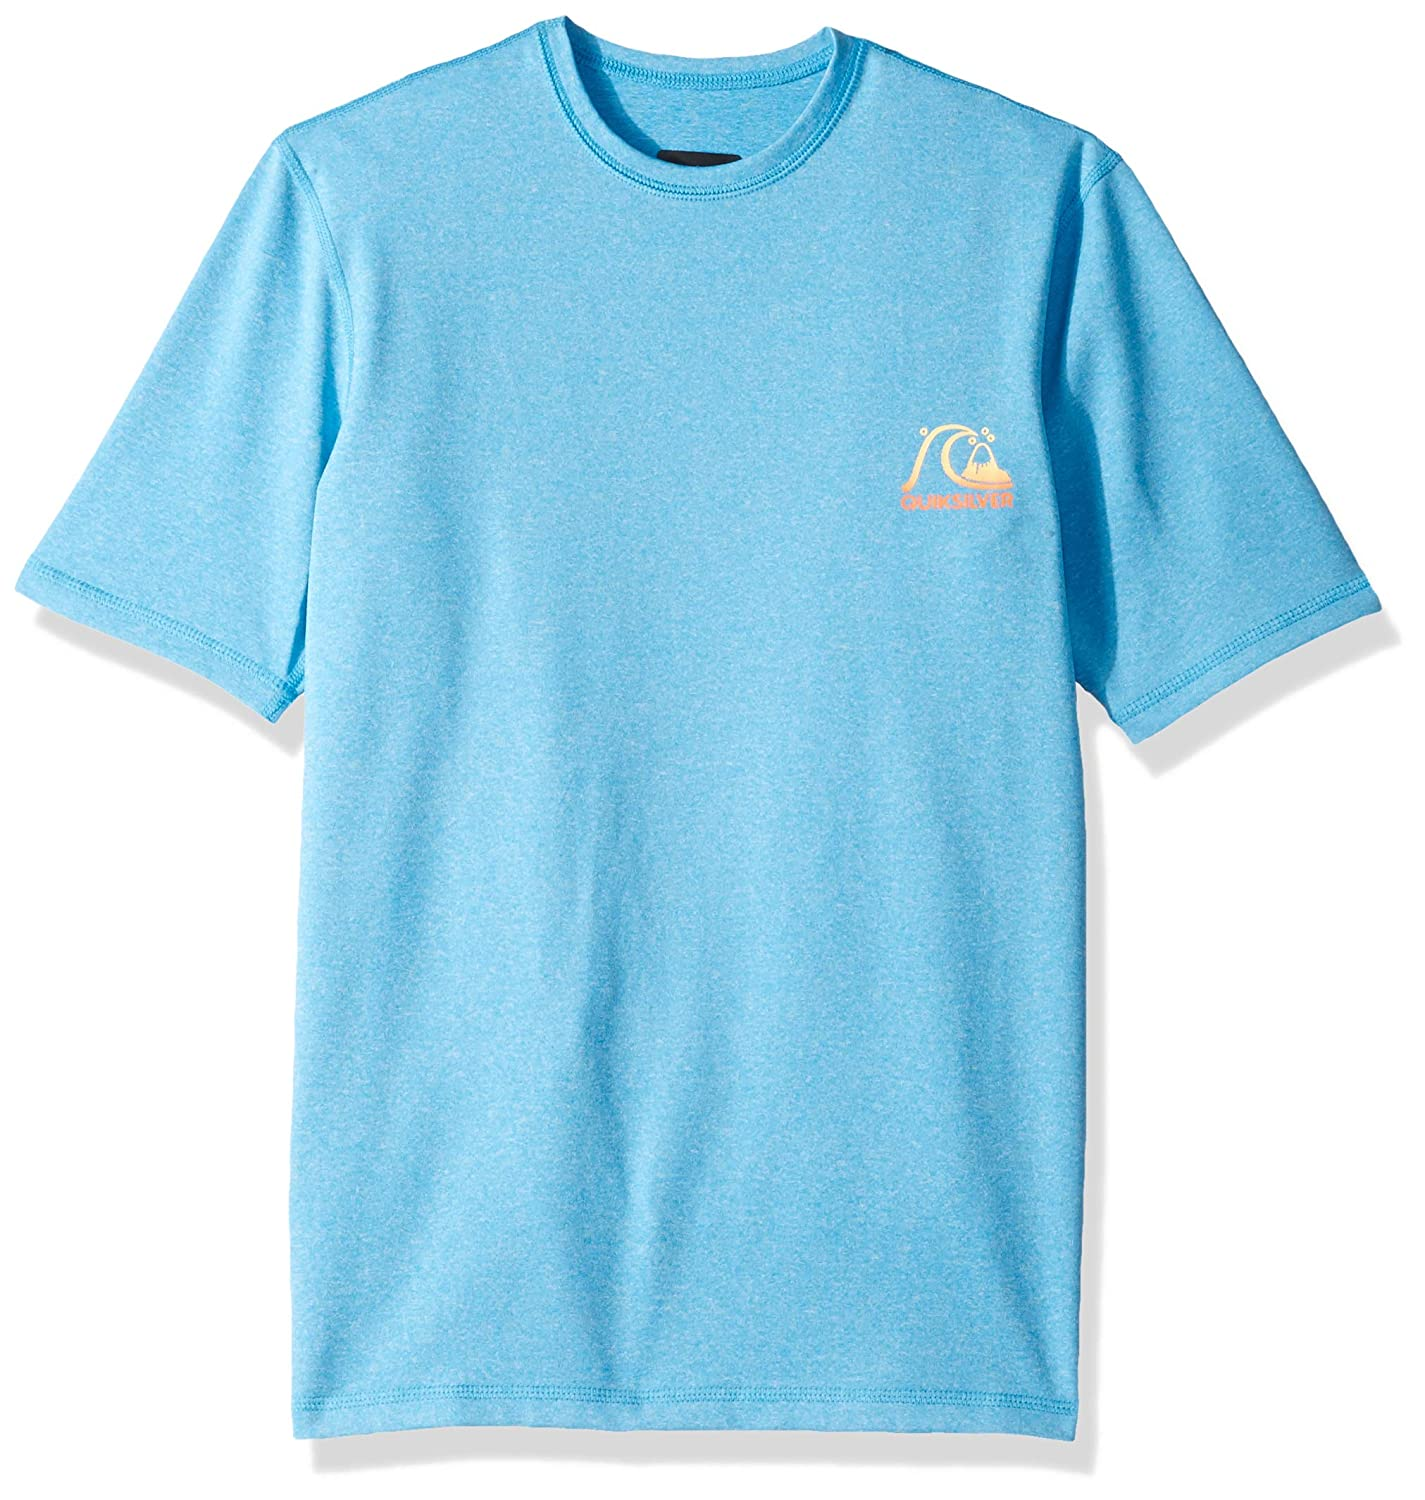 Quiksilver Big Boys Heritage Surf Tee Short Sleeve Youth UPF 50 Sun Protection